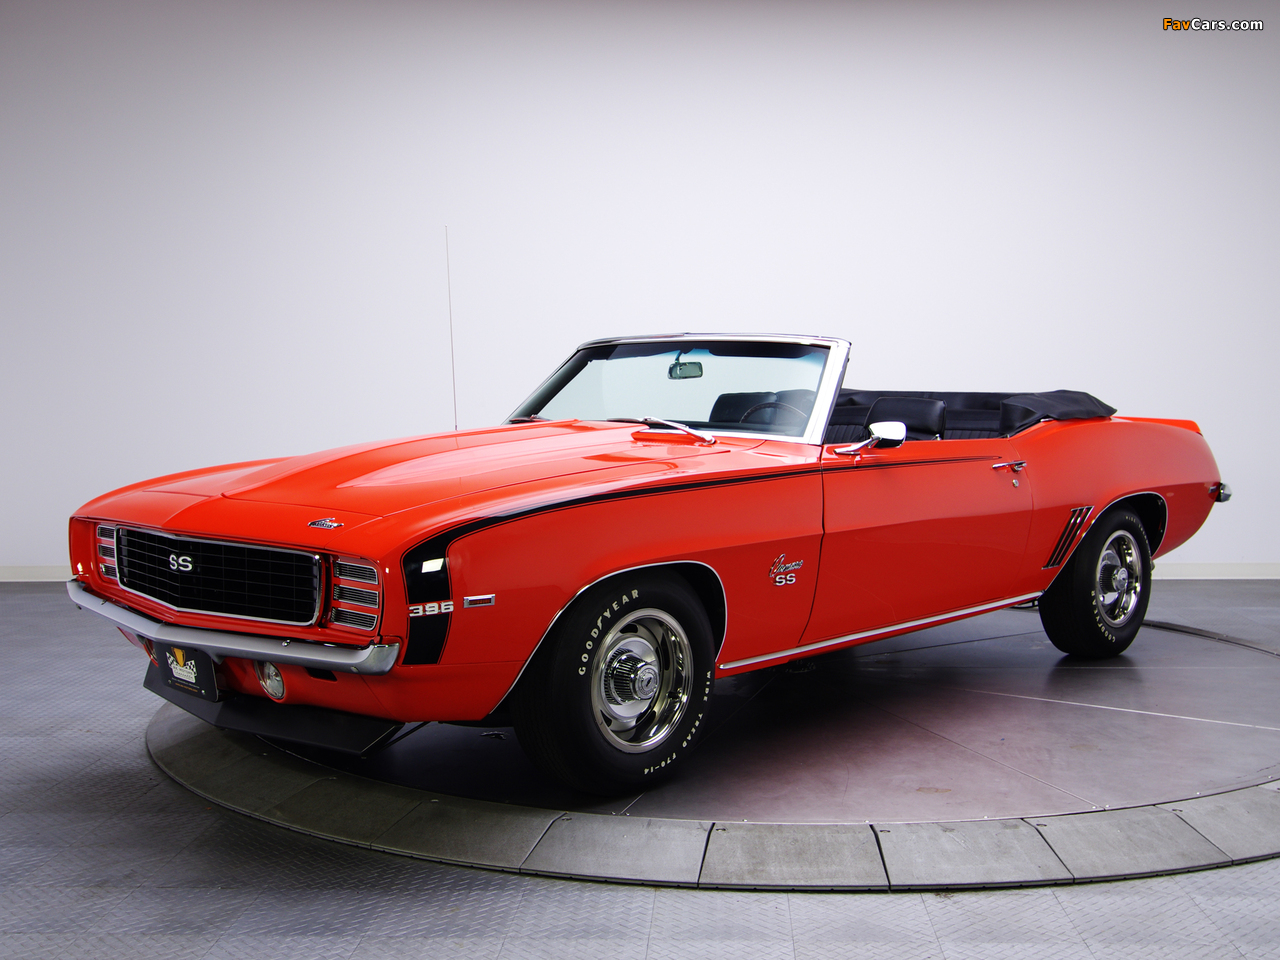 Chevrolet Camaro Rs Ss 396 Convertible 1969 Pictures